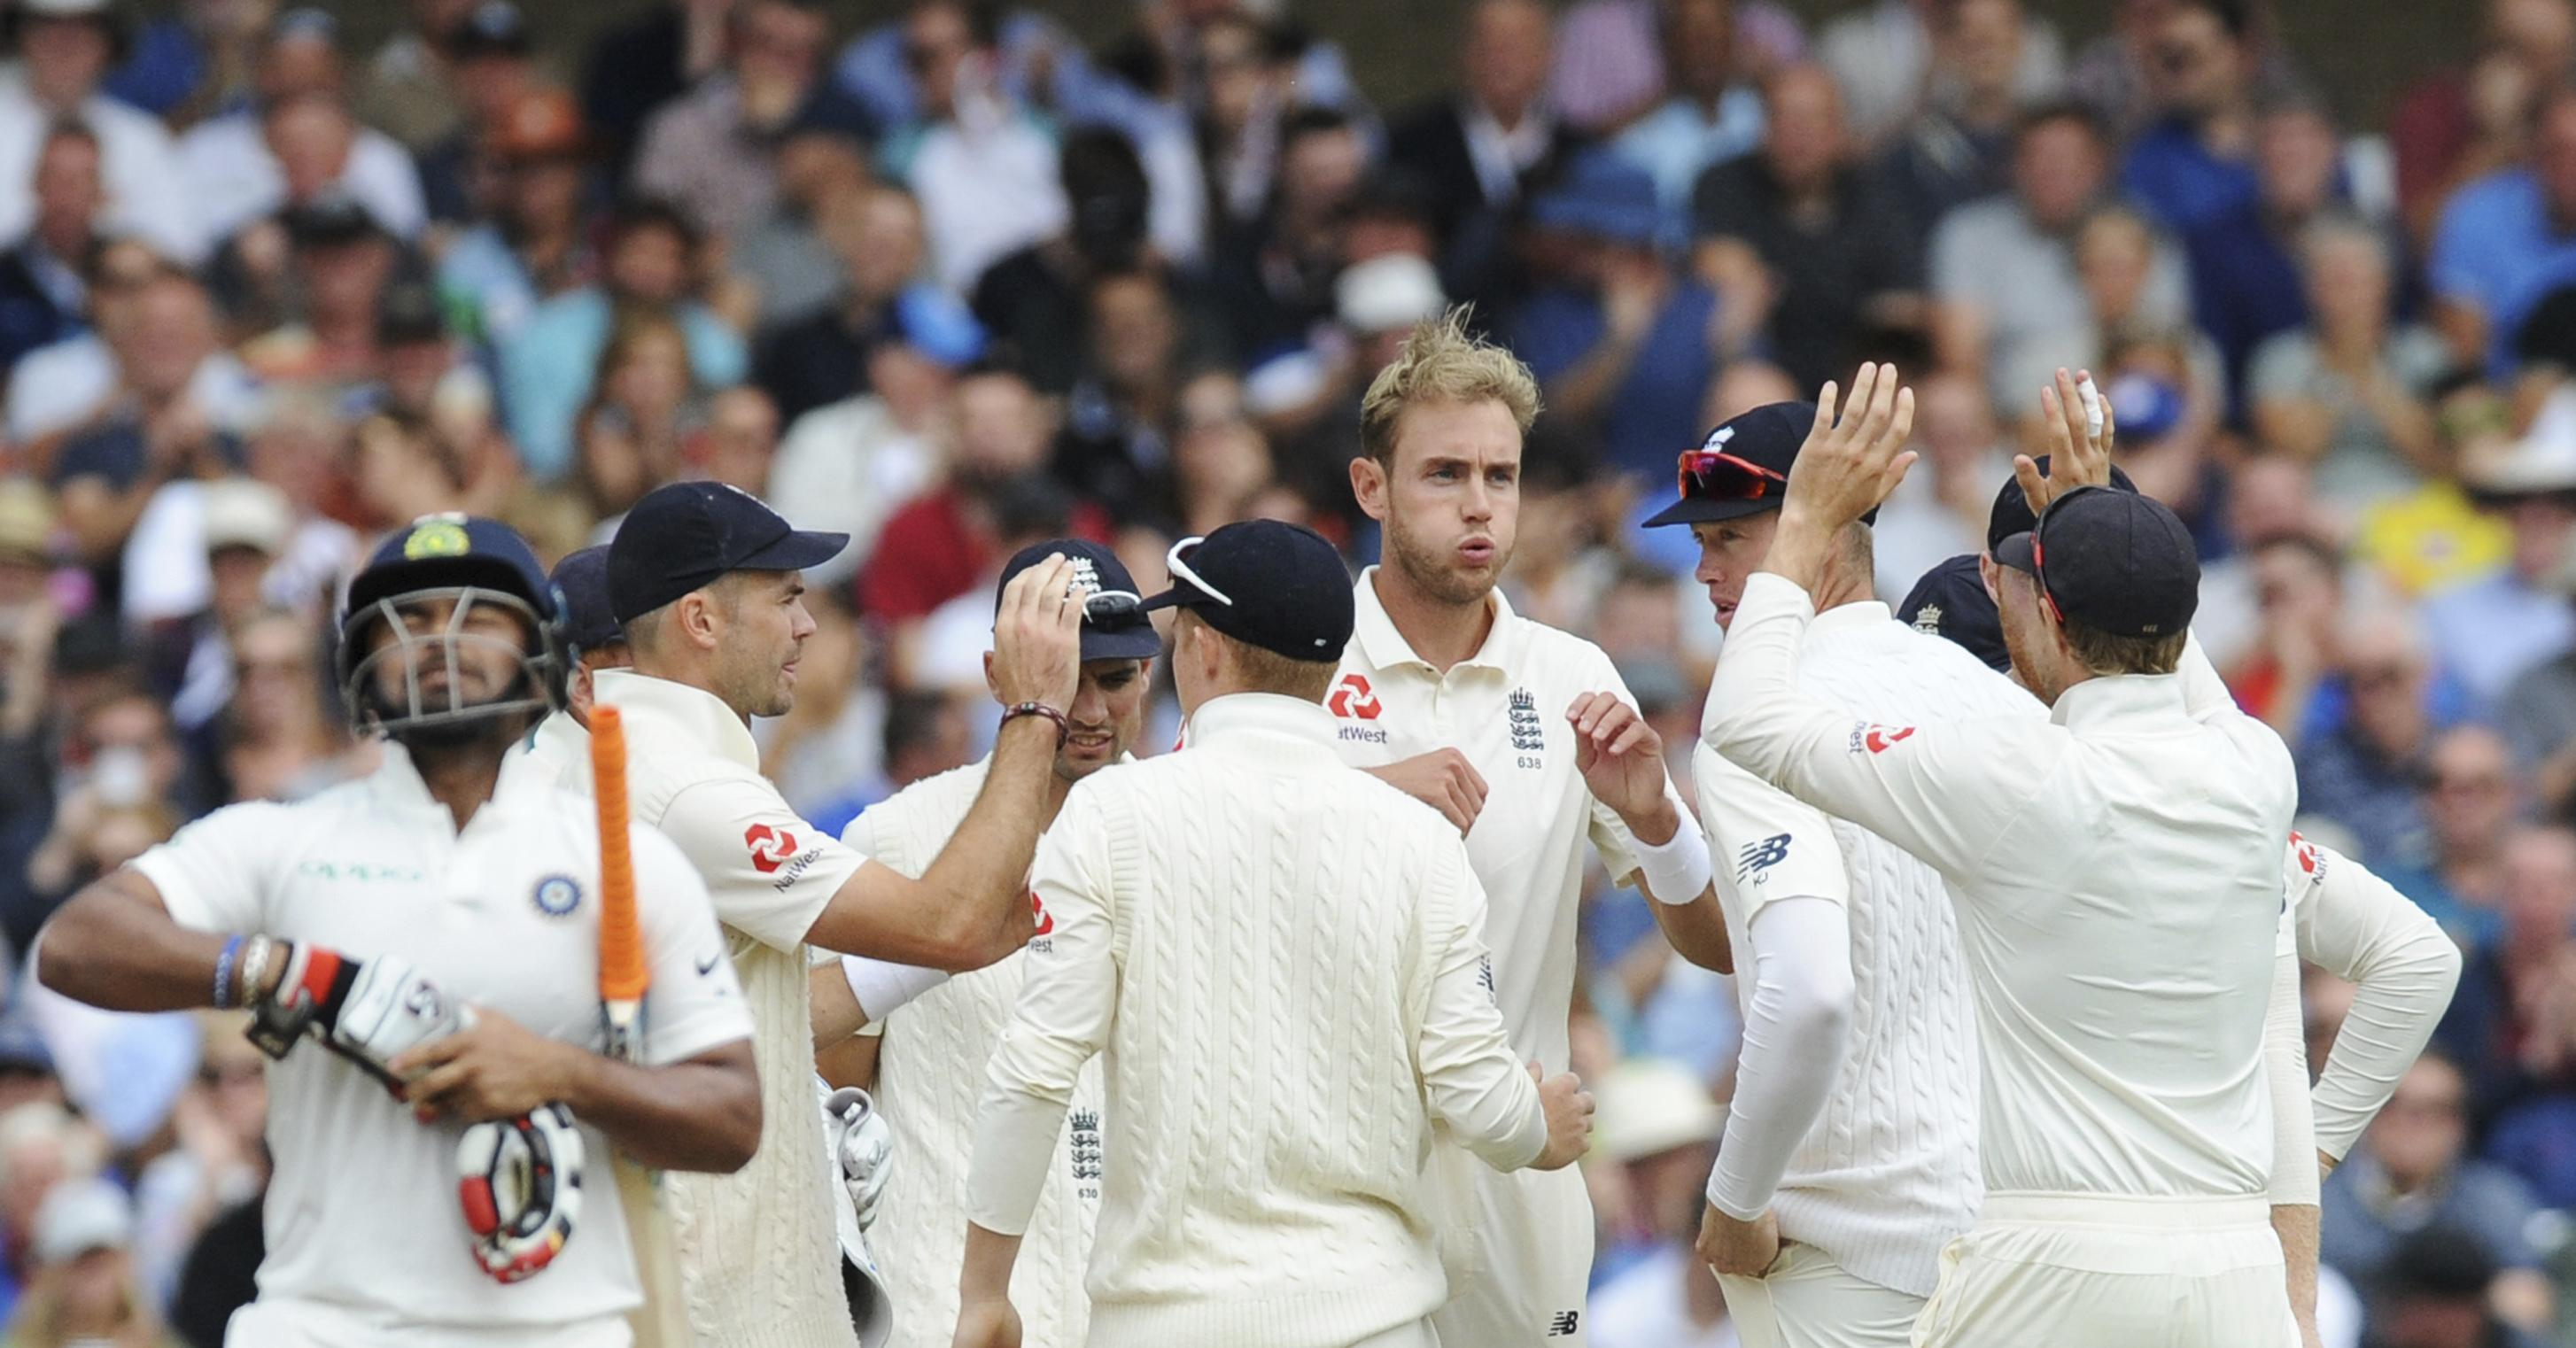 Stuart Broad has been fined 15 per cent of his match fee for a clash with Rishabh Pant